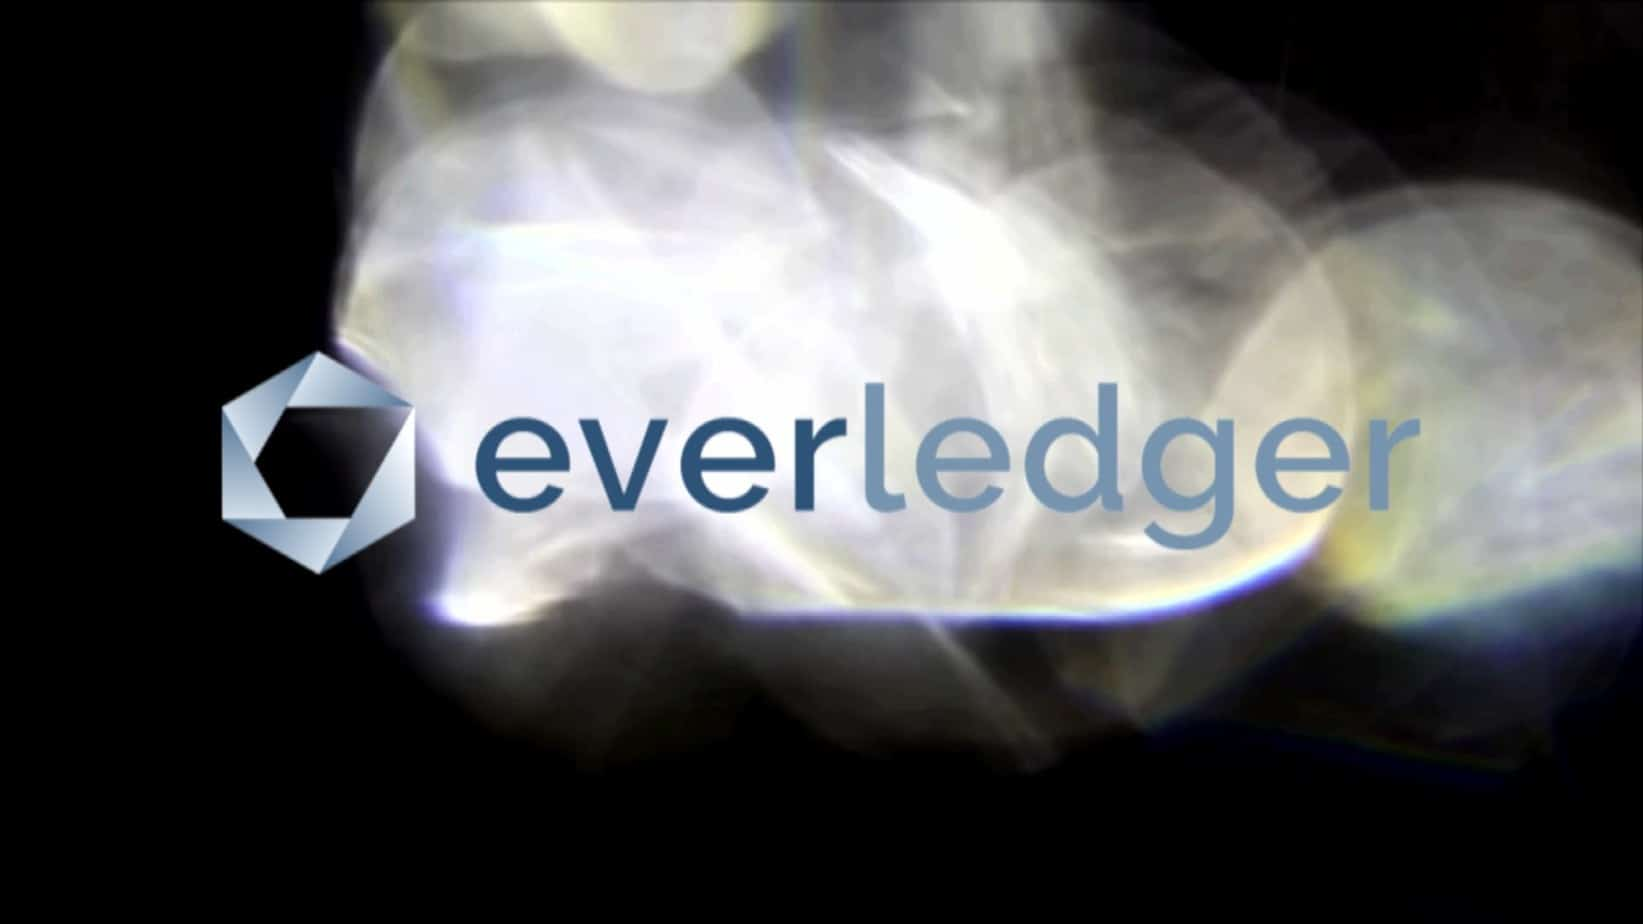 Everledger Rolls Out Blockchain Technology To Digitally